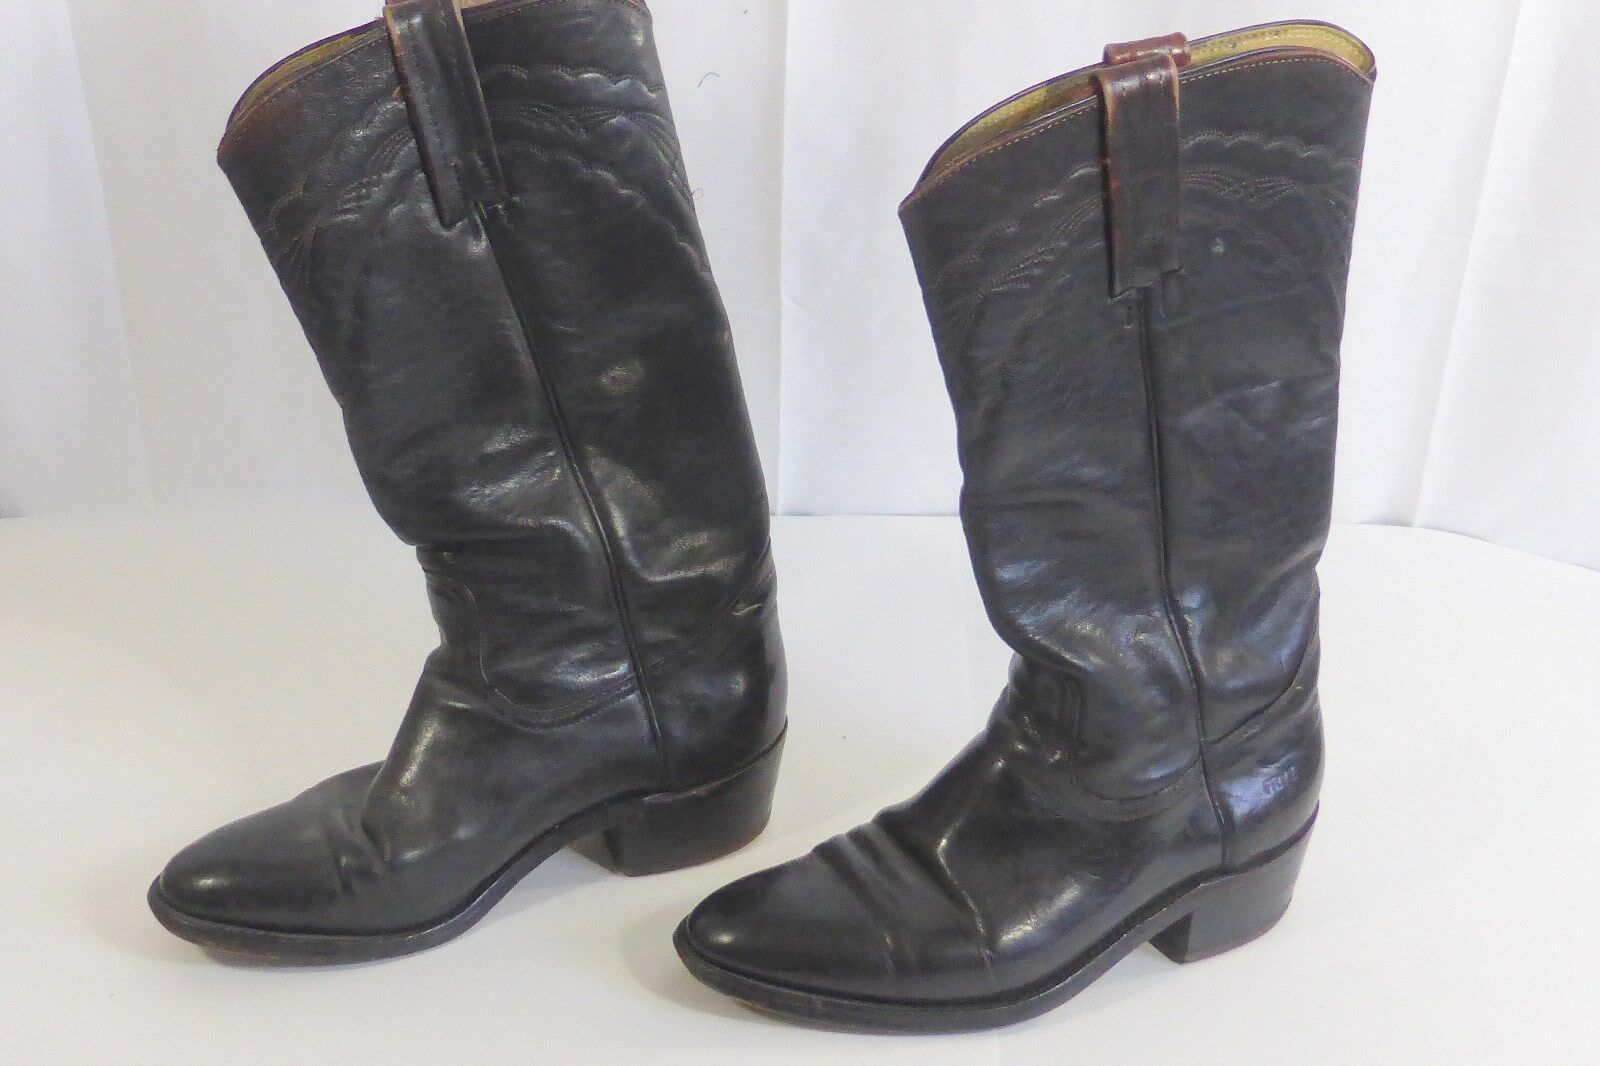 Frye  Western Boots Size 8 1 2 Dark Brown Cowboy Boots Pre-Owned